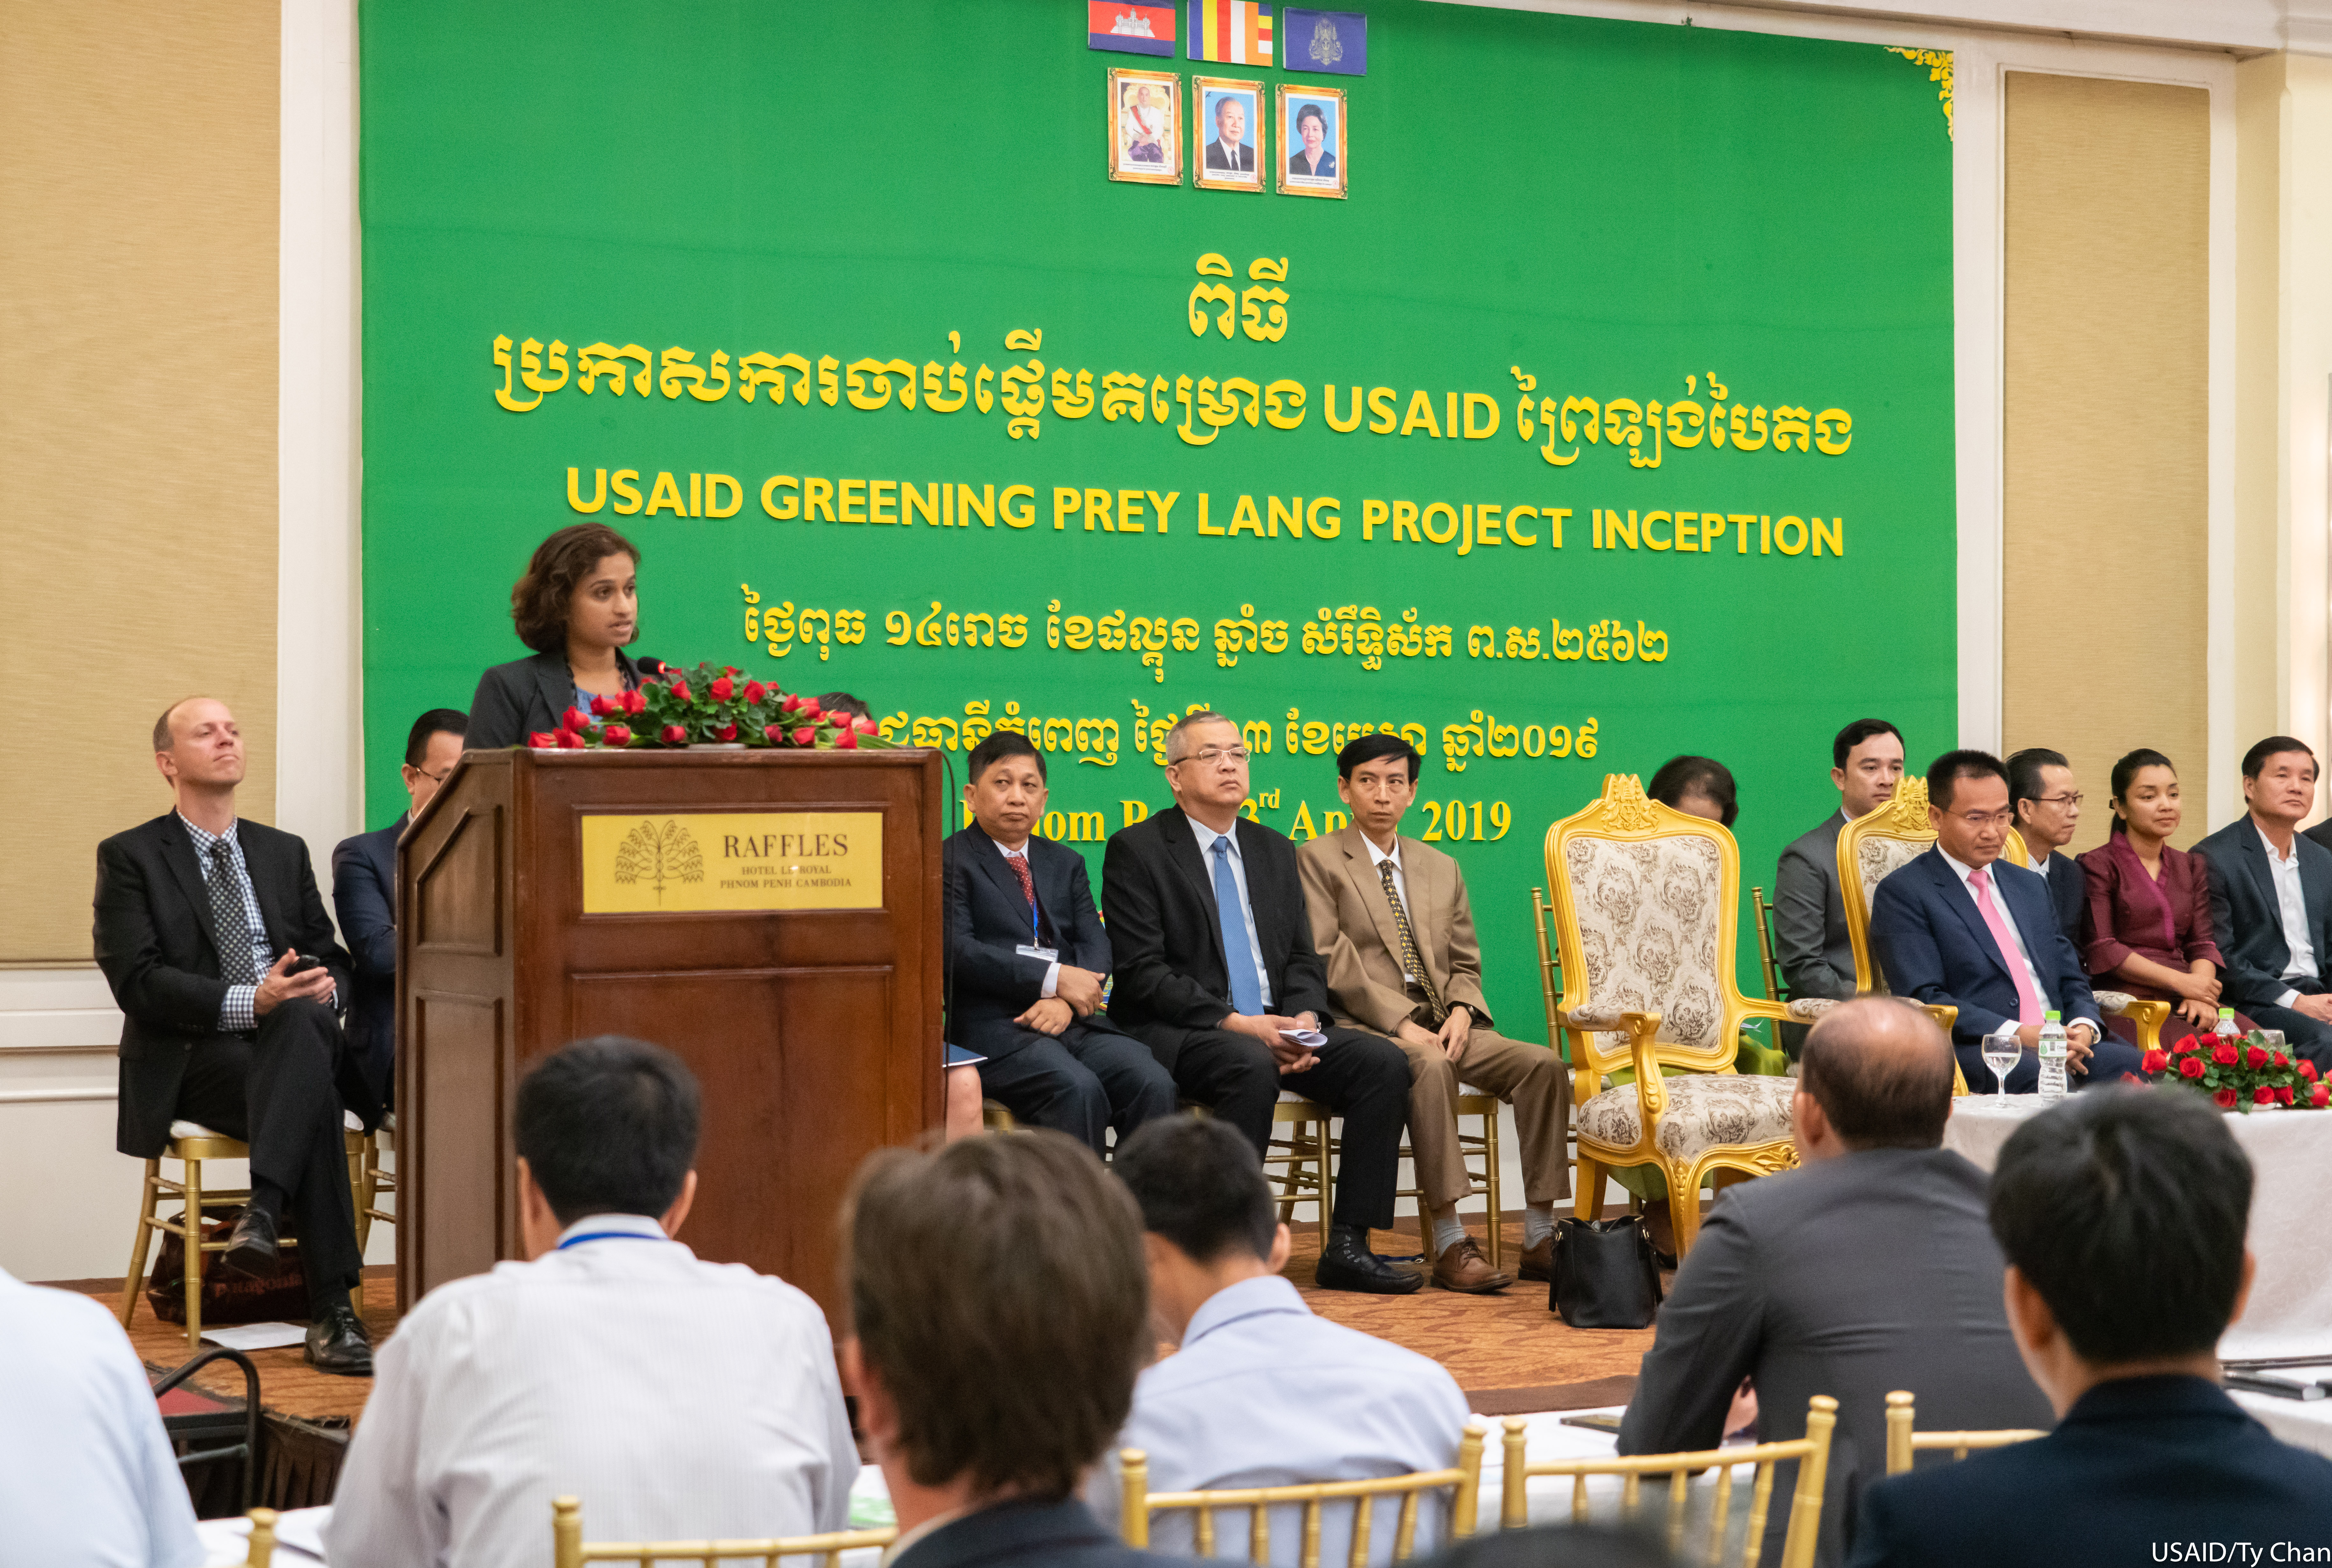 Remarks by Ms  Veena Reddy, Mission Director, USAID/Cambodia